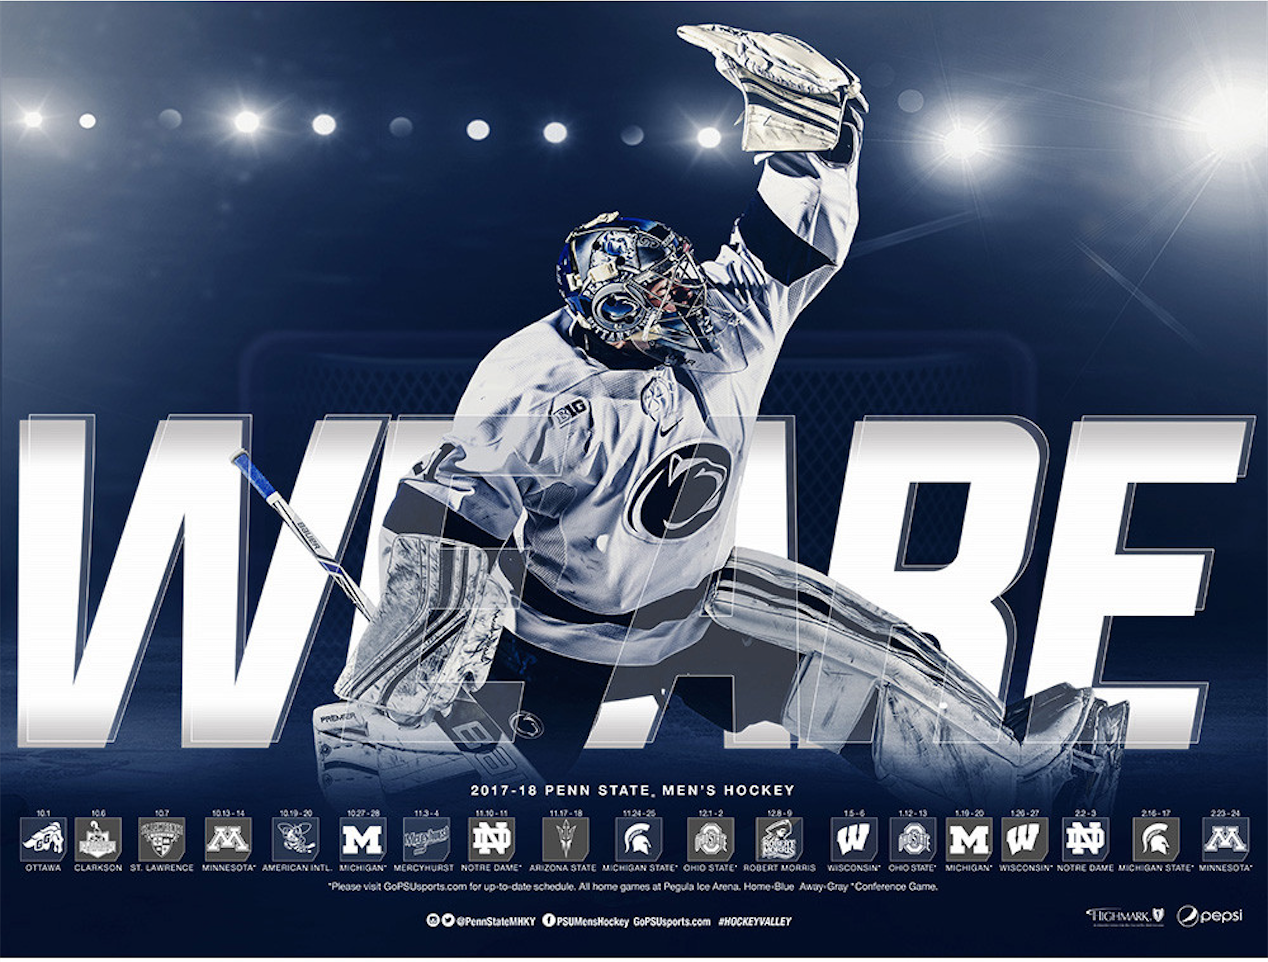 penn state colorado - psu hockey game watch - psu vs wisconsin